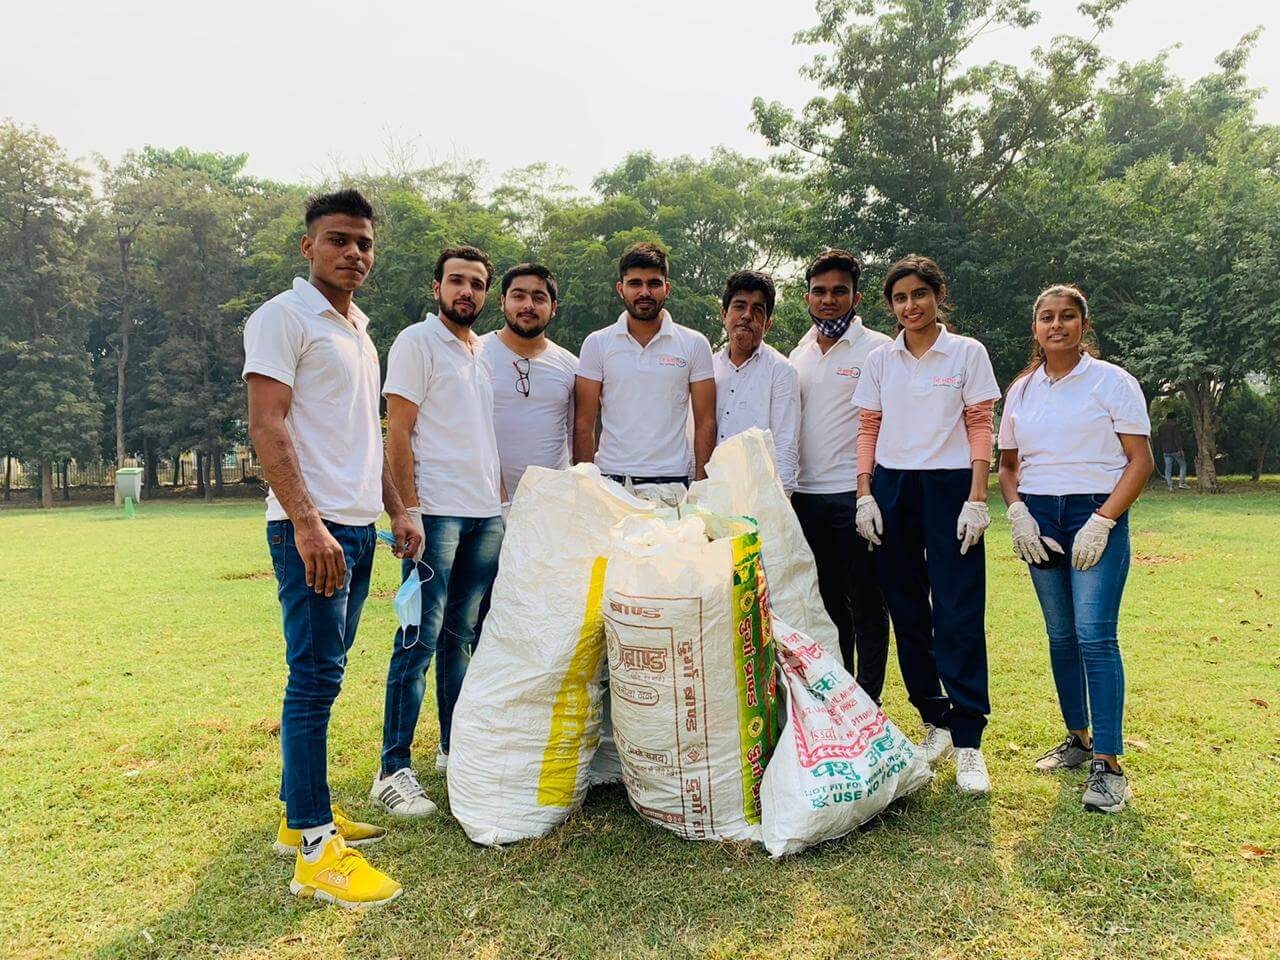 October 25 2020 - Central Park Cleanliness Drive - 6